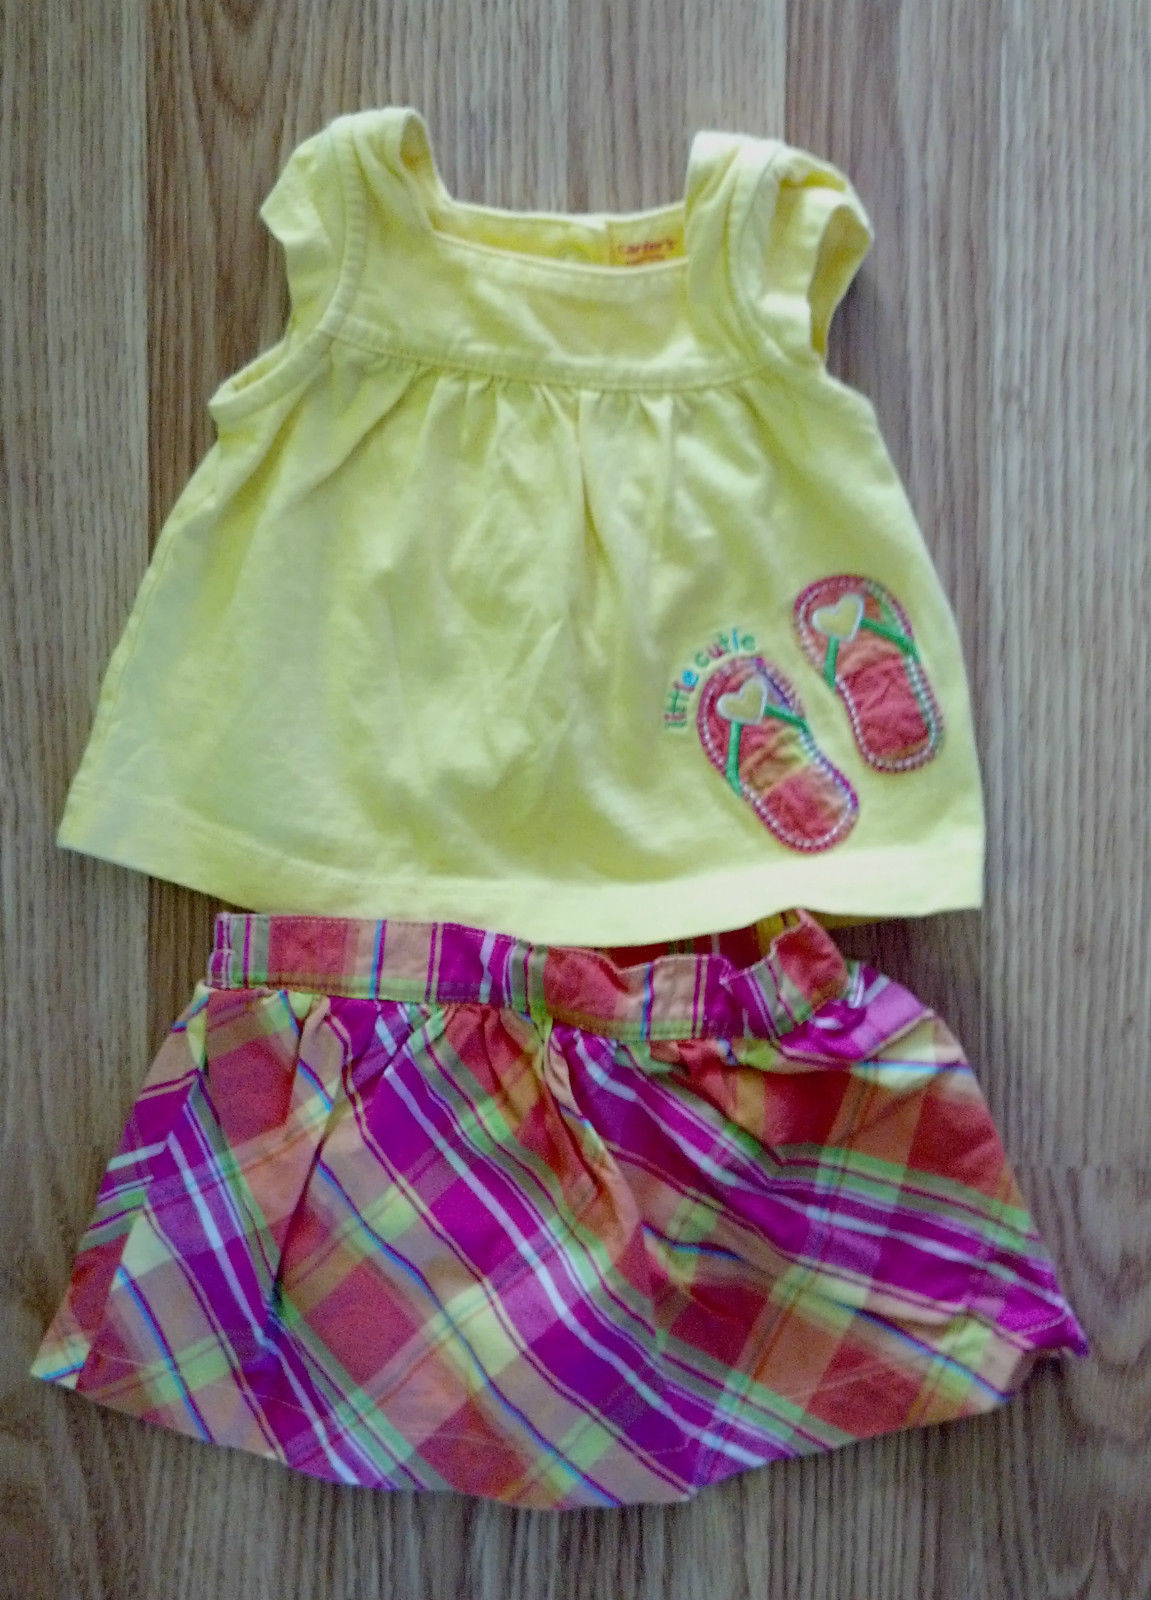 NWOT Girl's Size 3 M Months Carter's Flip Flops Embroidered Top & Skirt Outfit